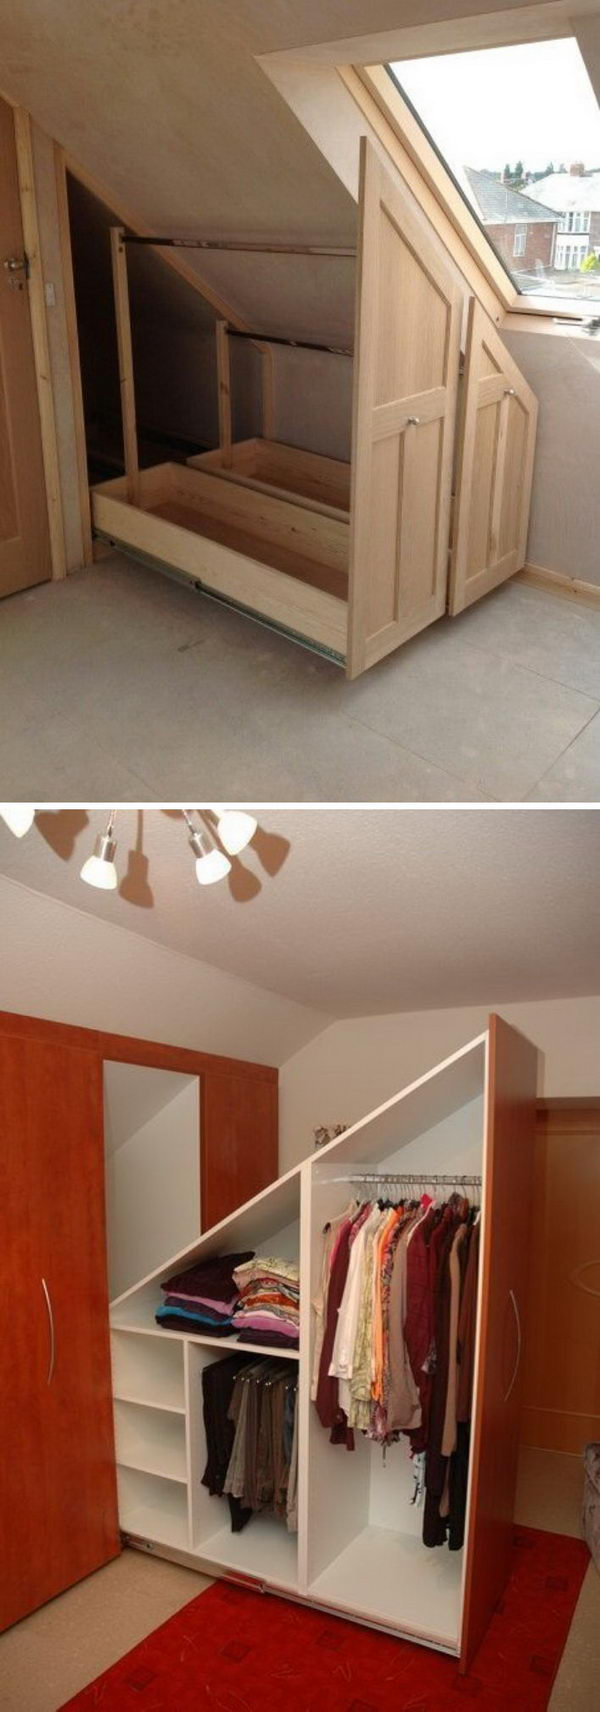 attic space saving ideas - 20 Clever Storage Ideas For Your Attic Hative